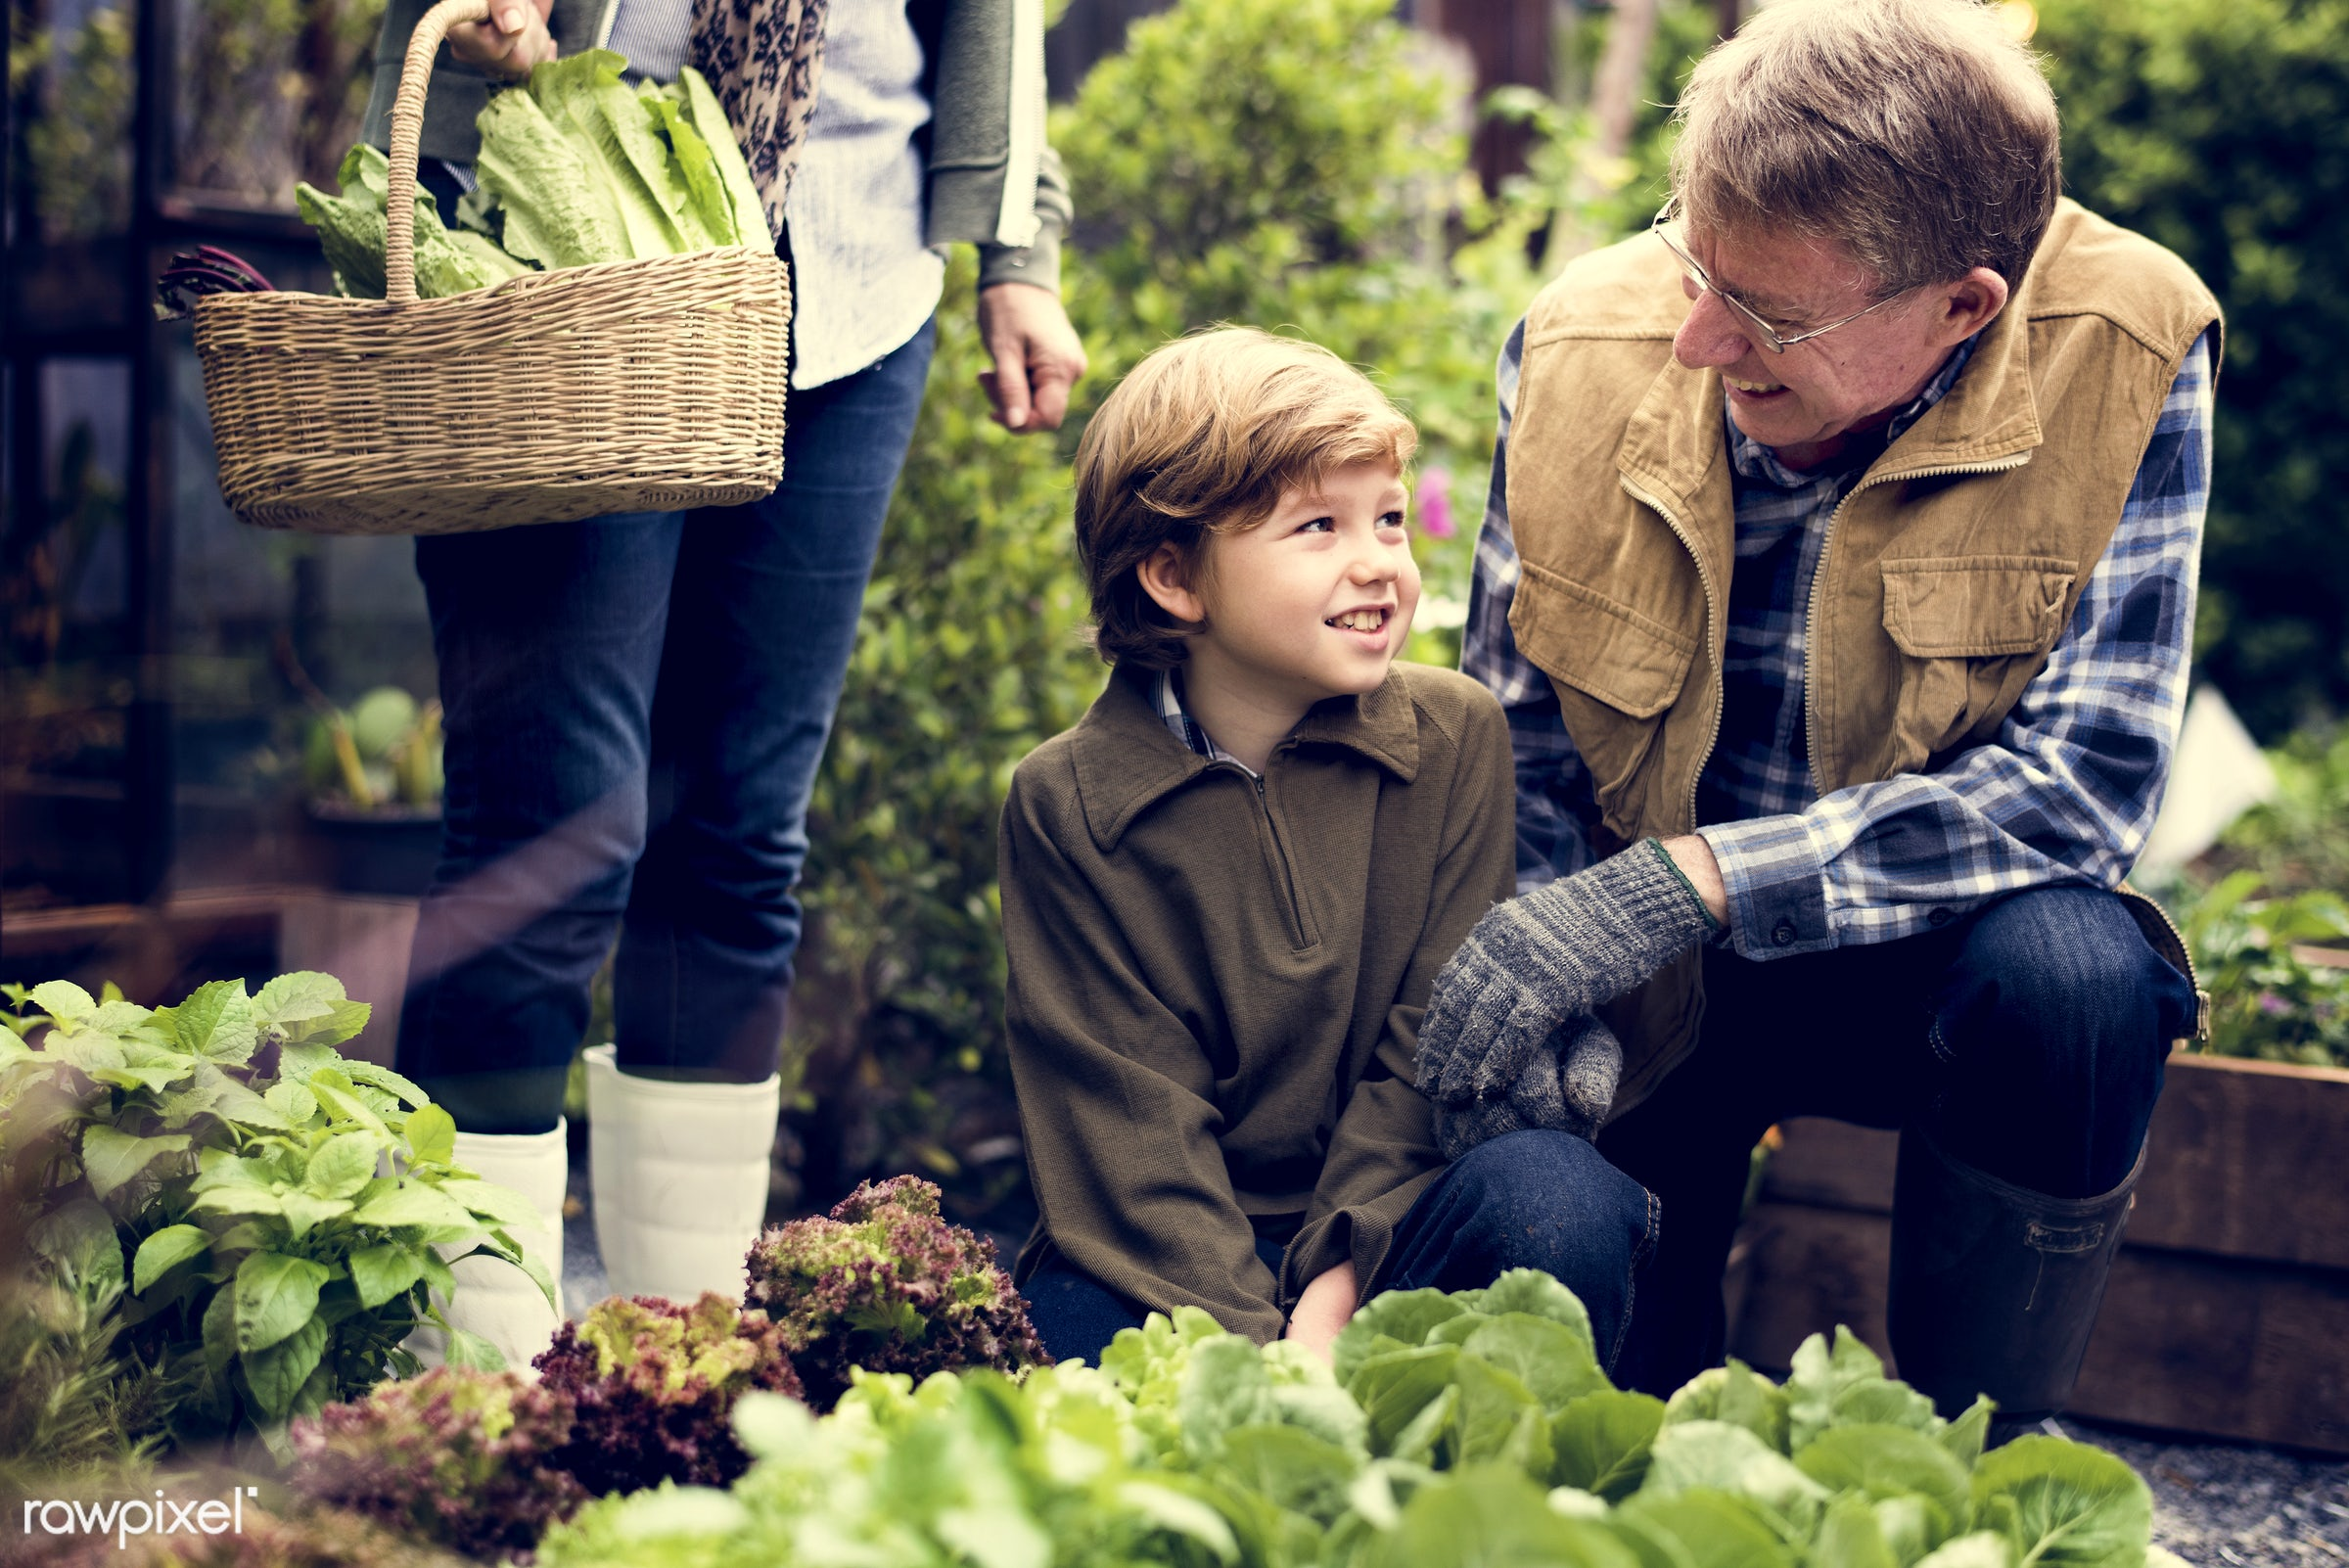 salad, person, leaves, people, tree, farmer, tree bed, flowers, dirt, agriculture, planting, present, nutrition, vegetable,...